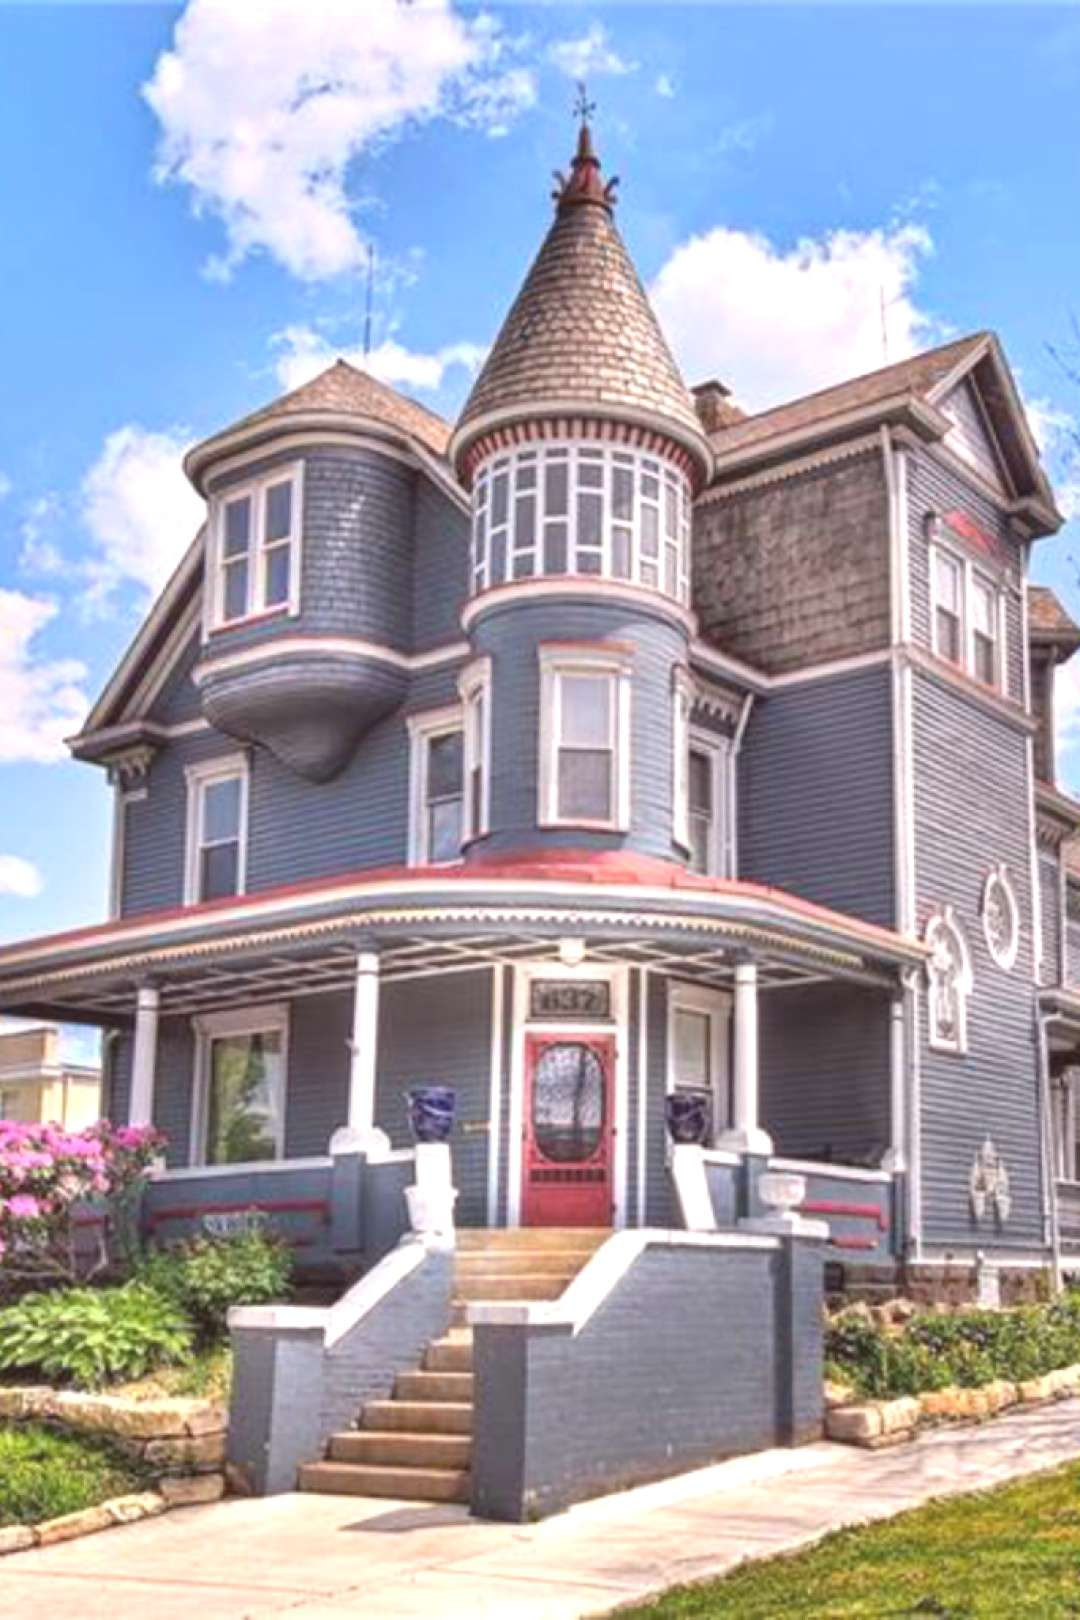 1891 Victorian For Sale In Ellwood City Pennsylvania -